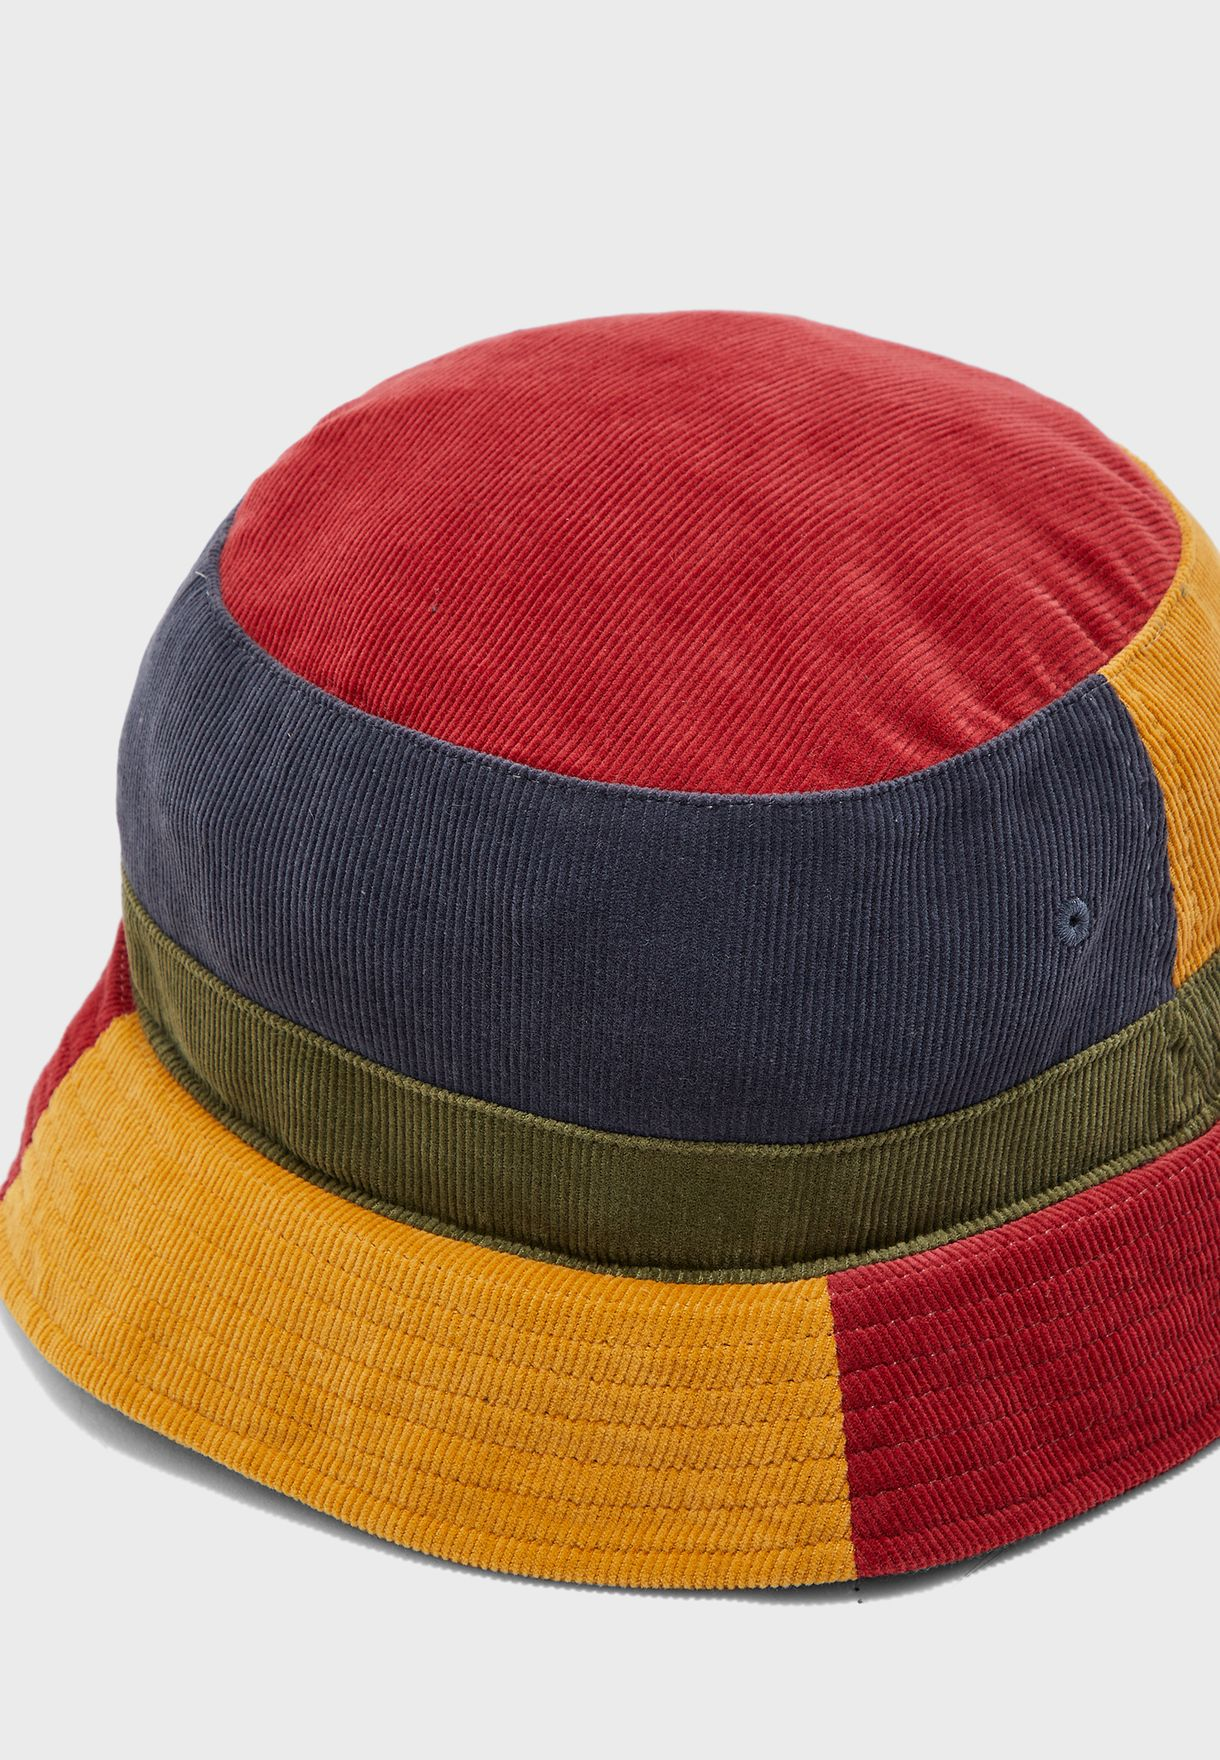 Mendoza Bucket Hat